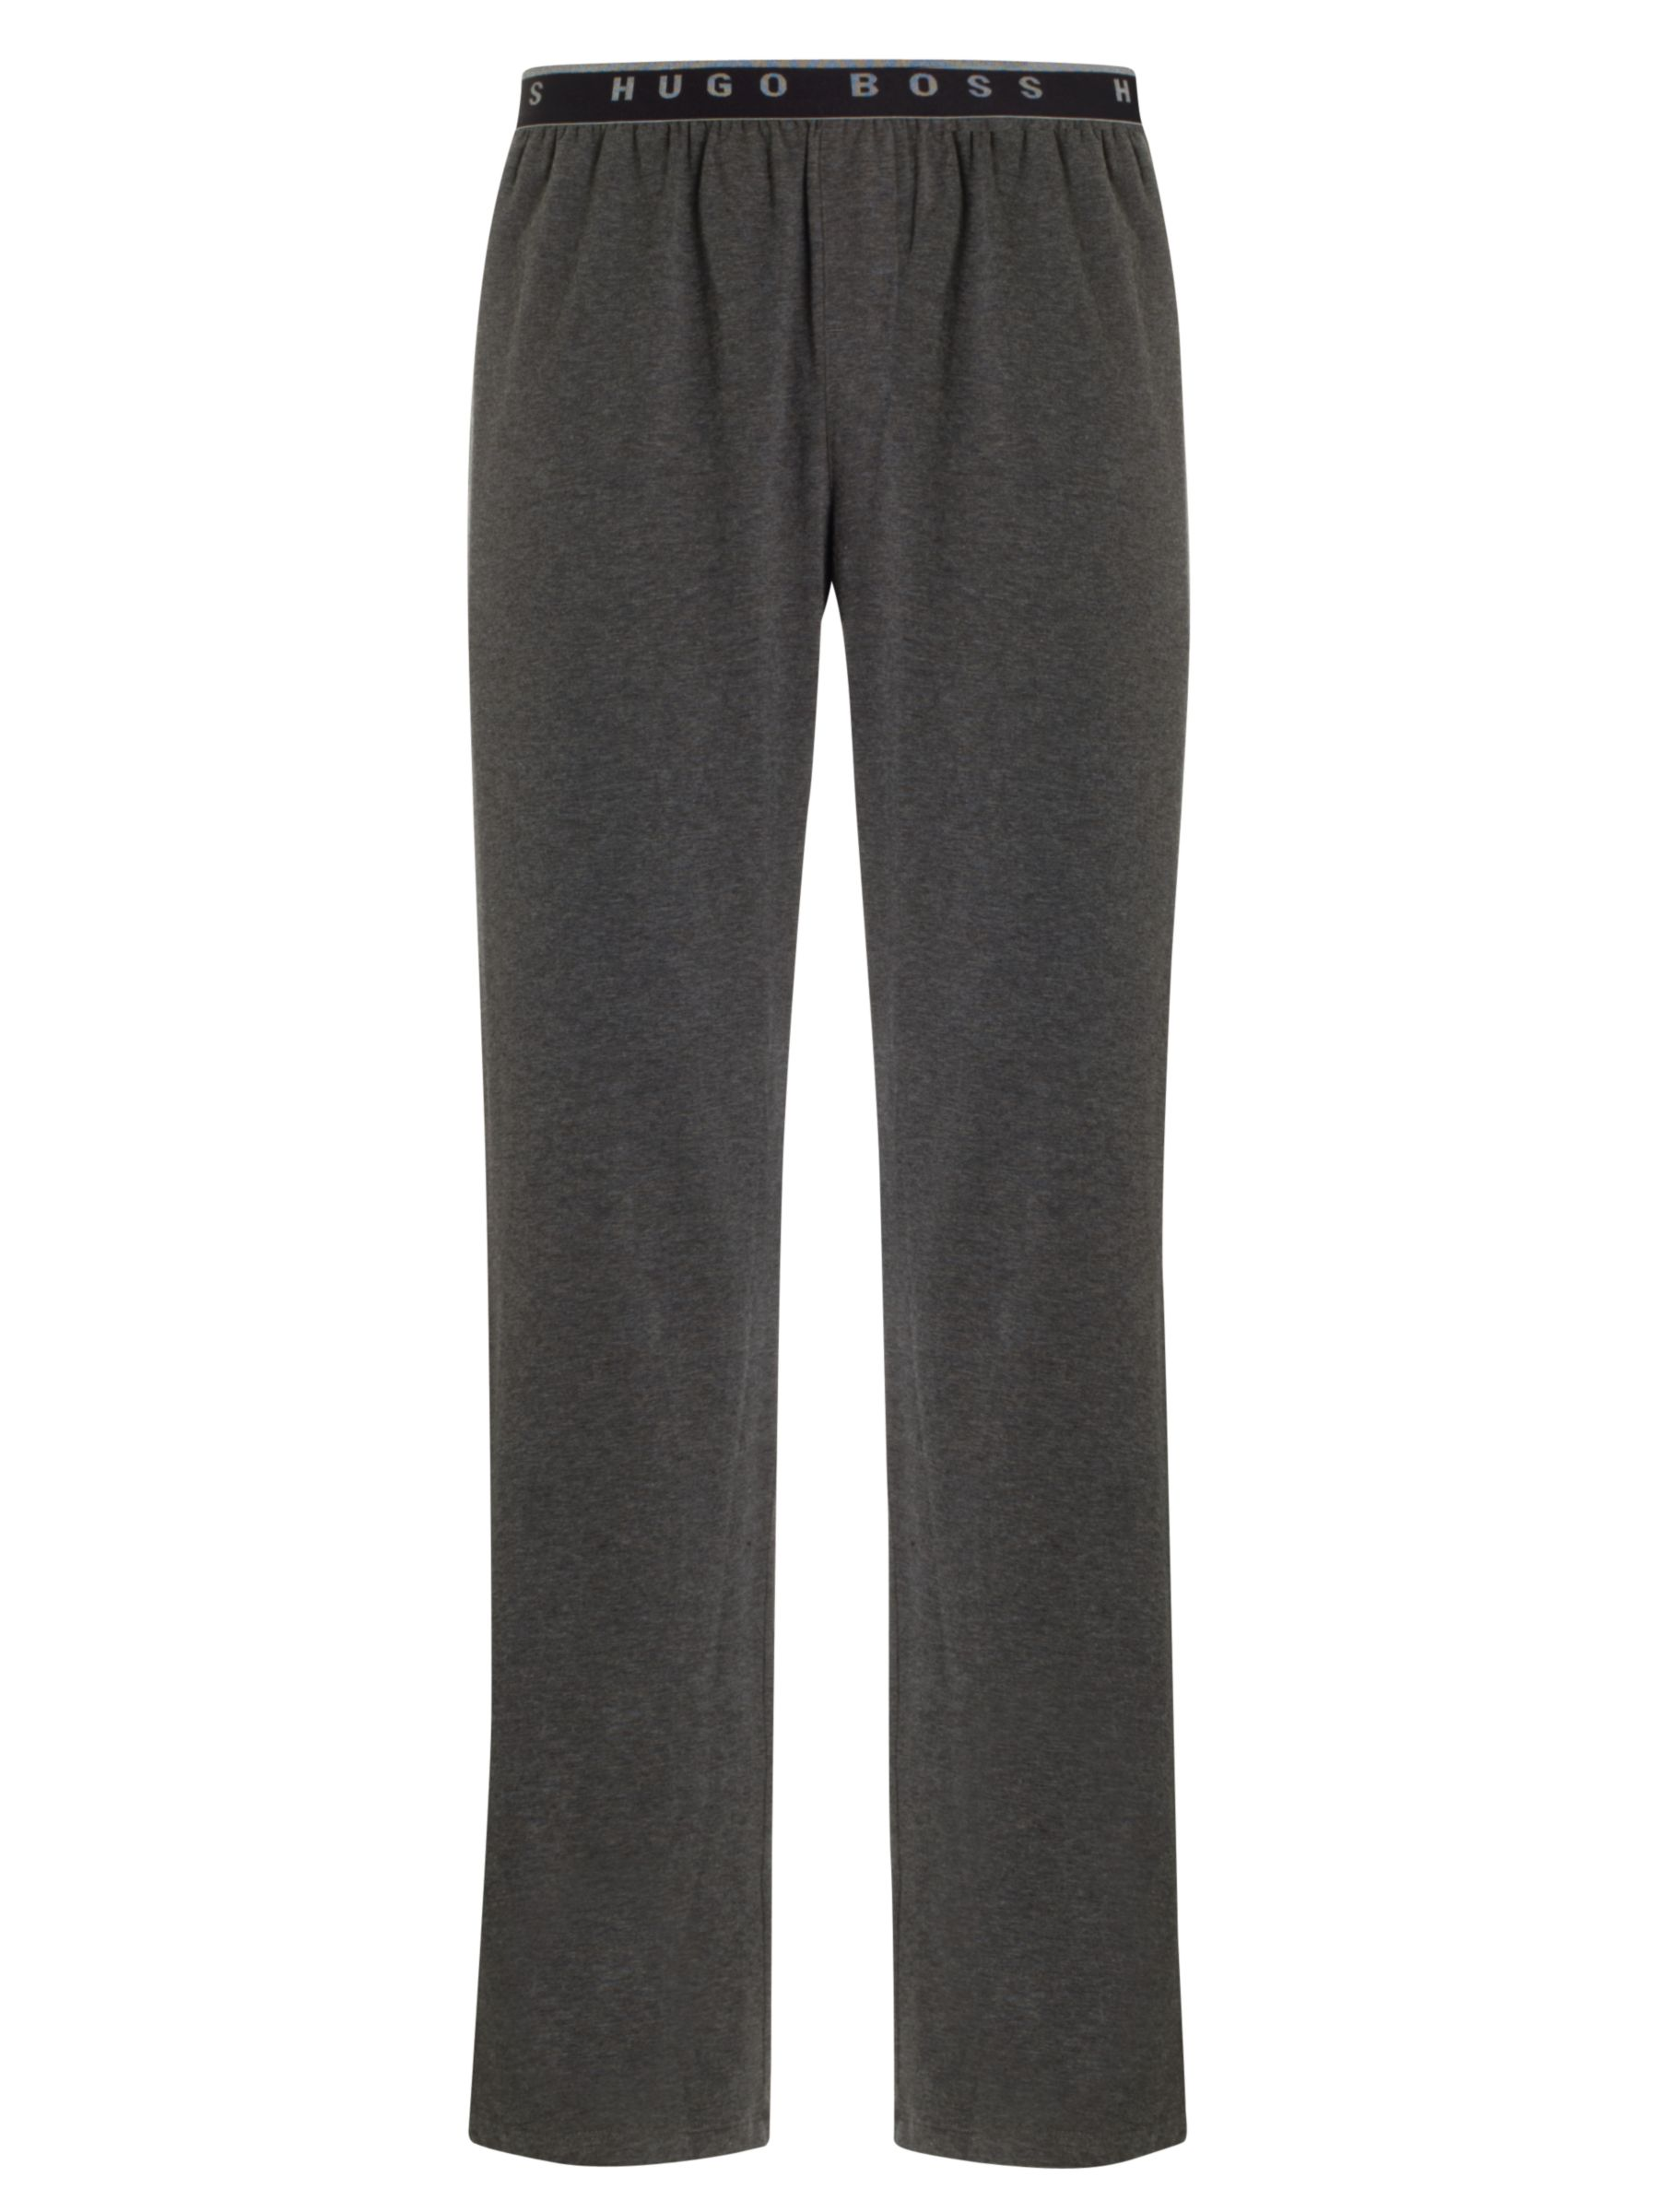 Hugo Boss Plain Logo Waist Lounge Pants